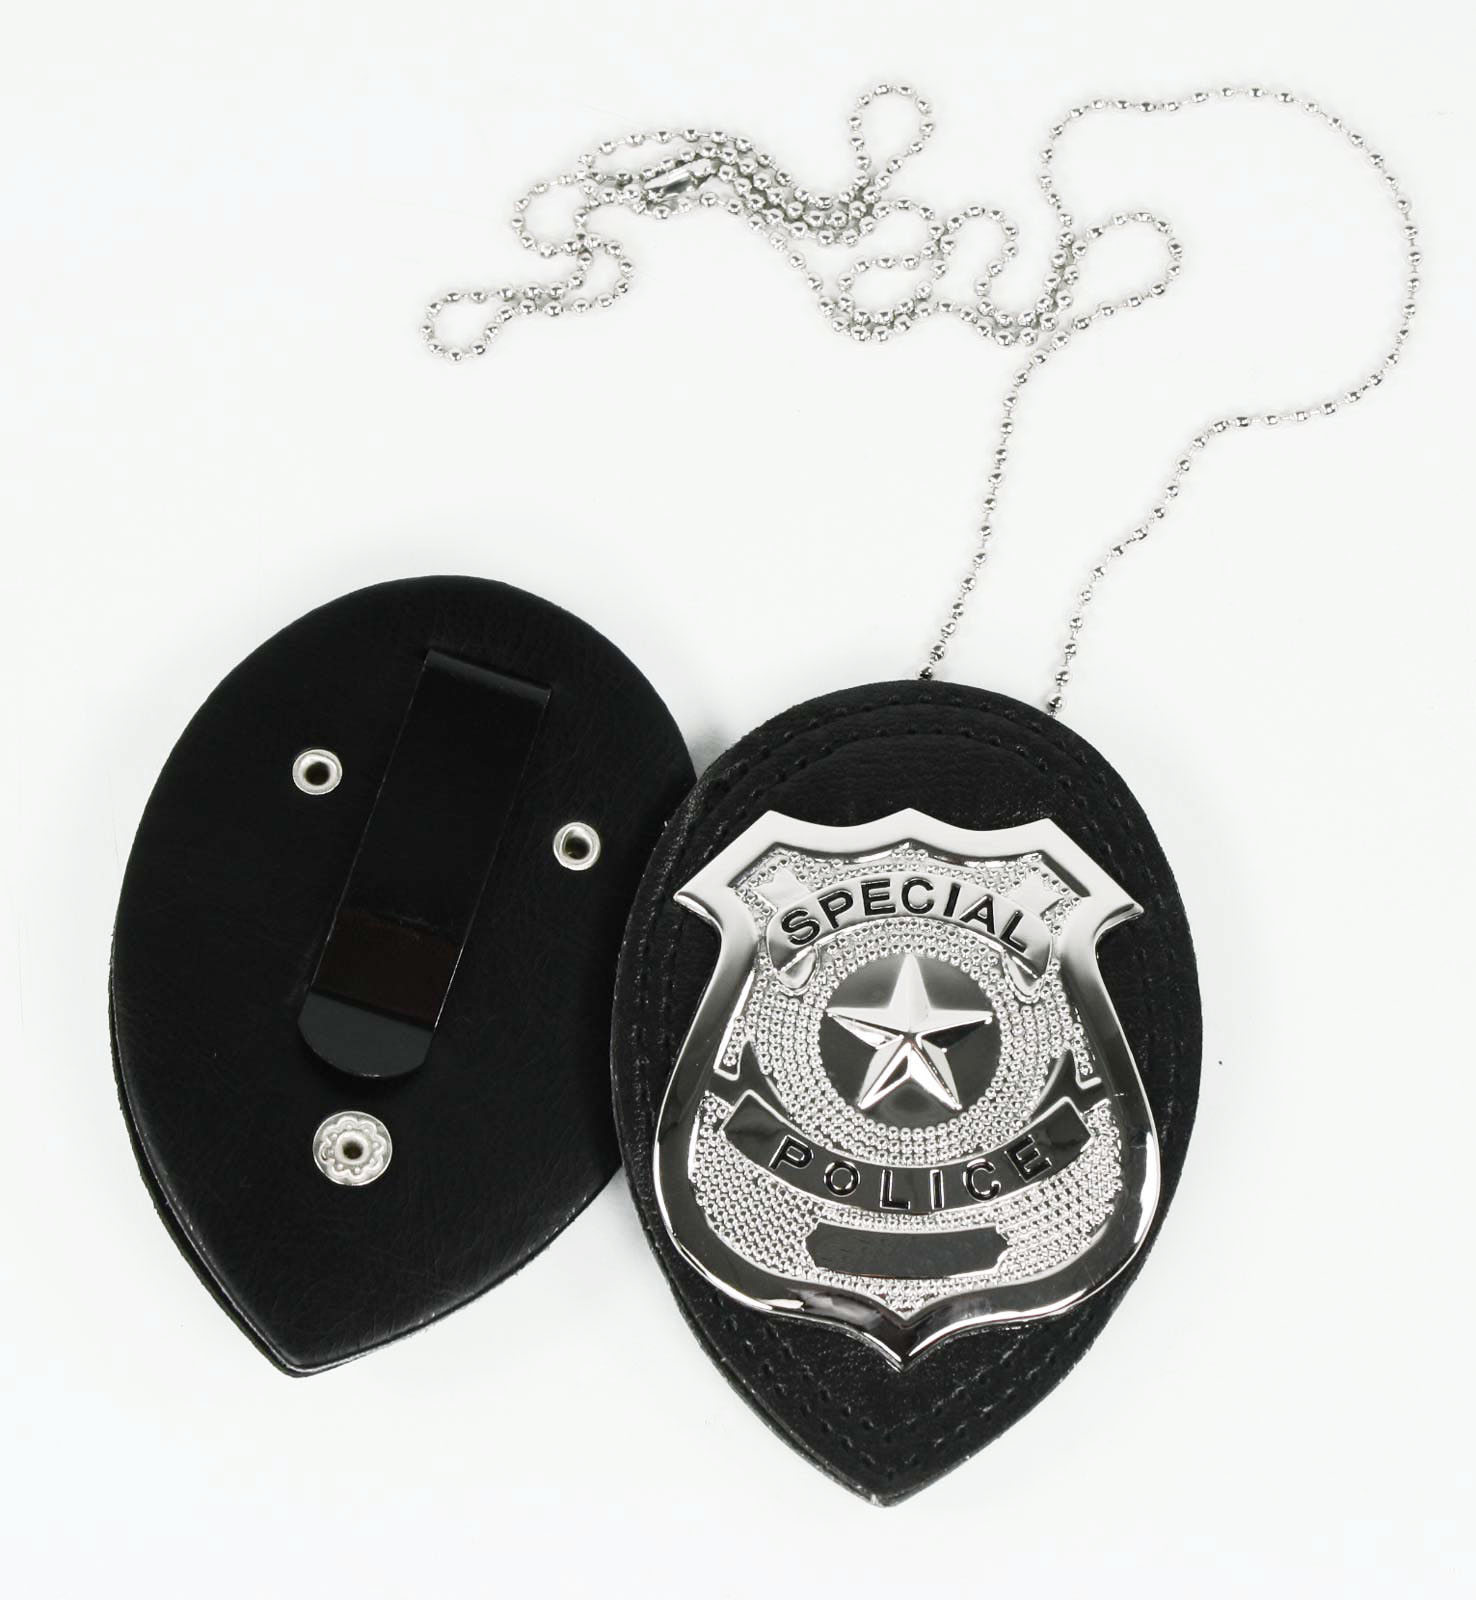 badge type central city previews tv police world flash pendant catalog